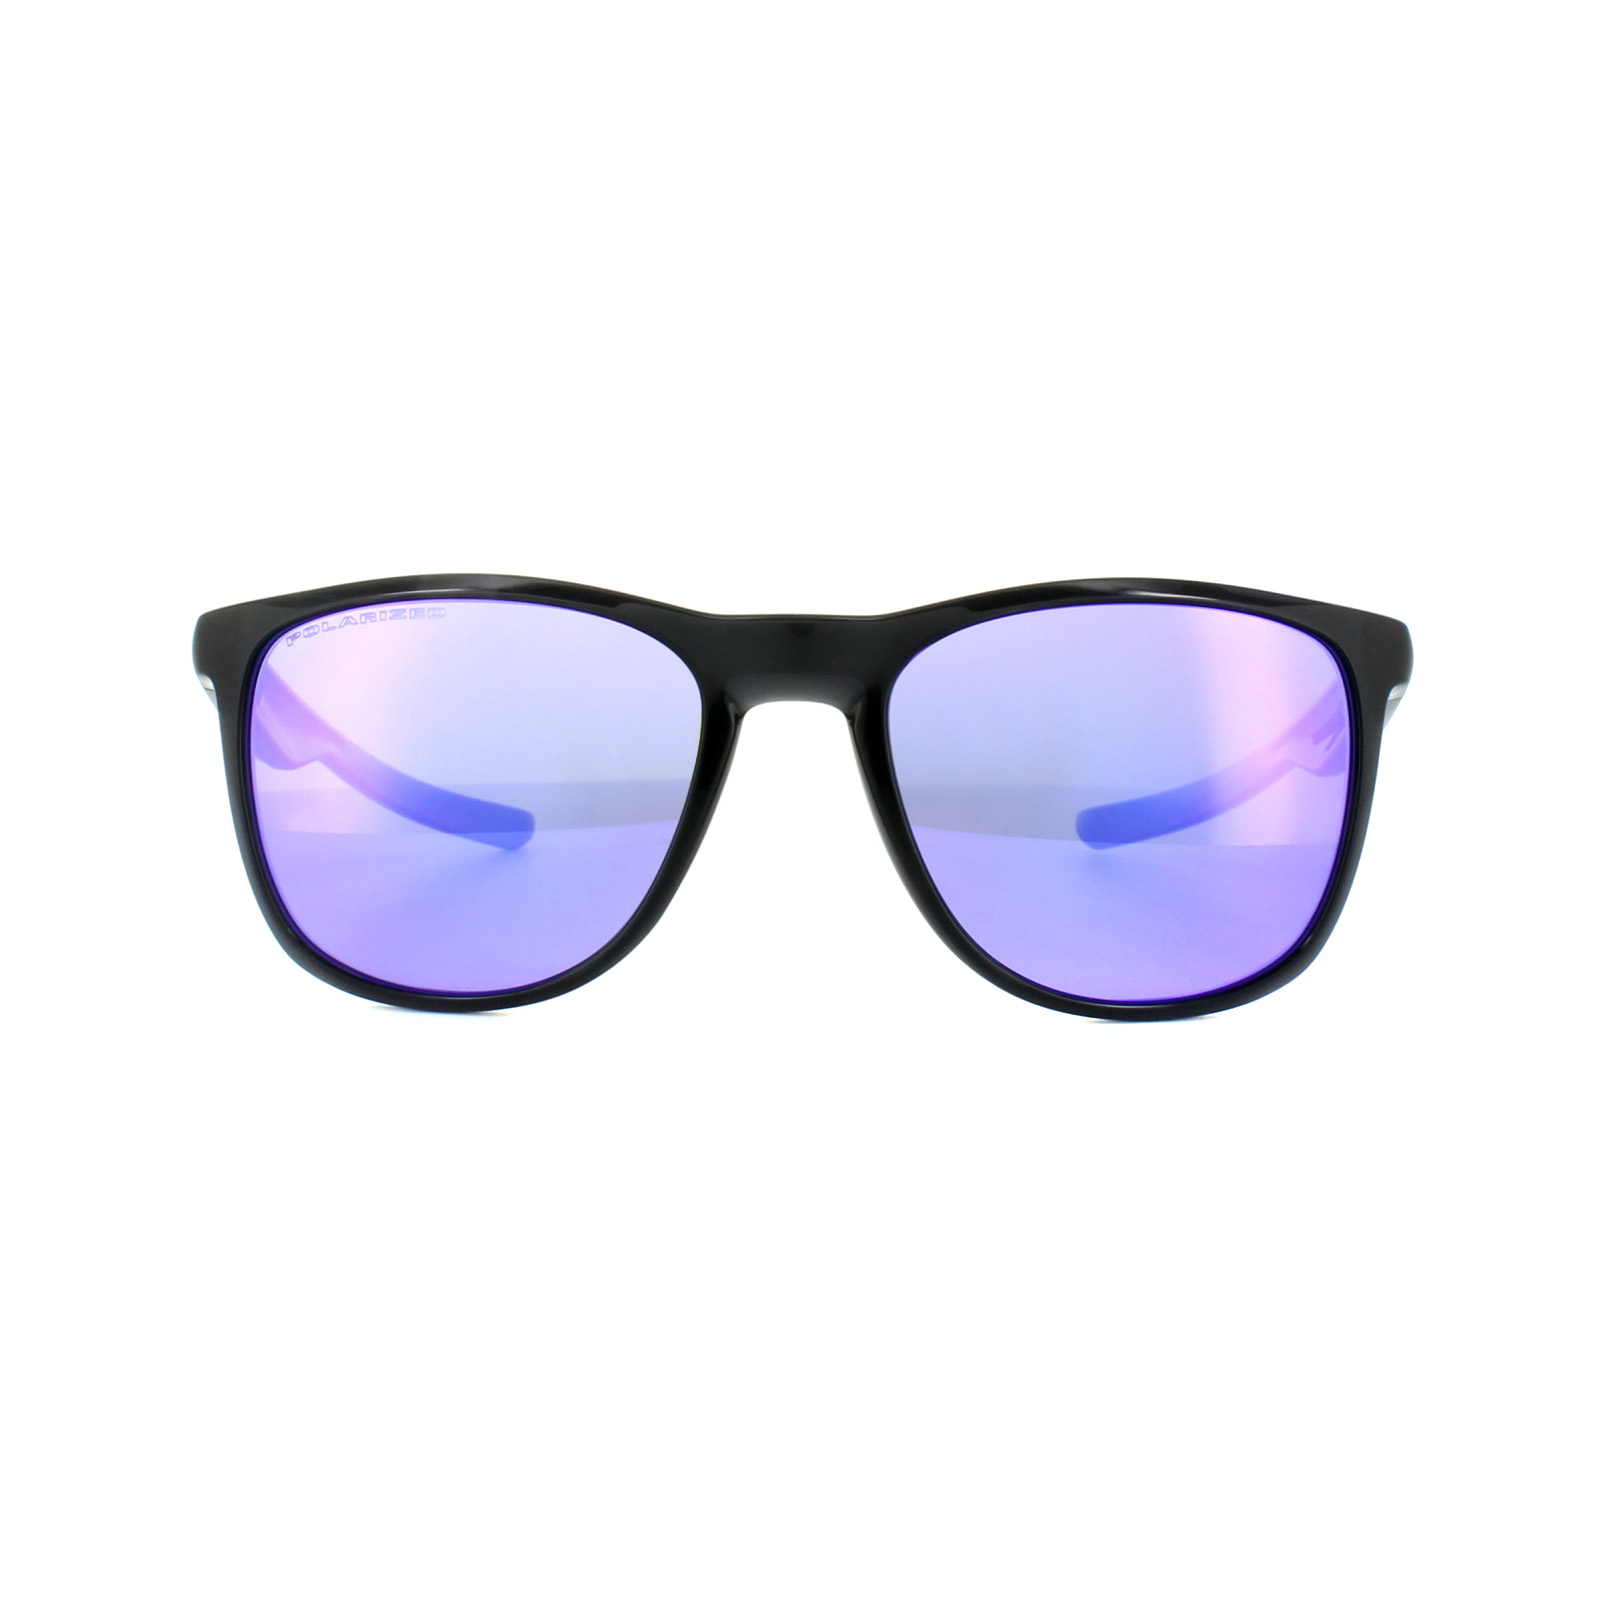 d3cfa76e8d Sentinel Oakley Sunglasses Trillbe X OO9340-03 Black Ink Violet Iridium  Polarized